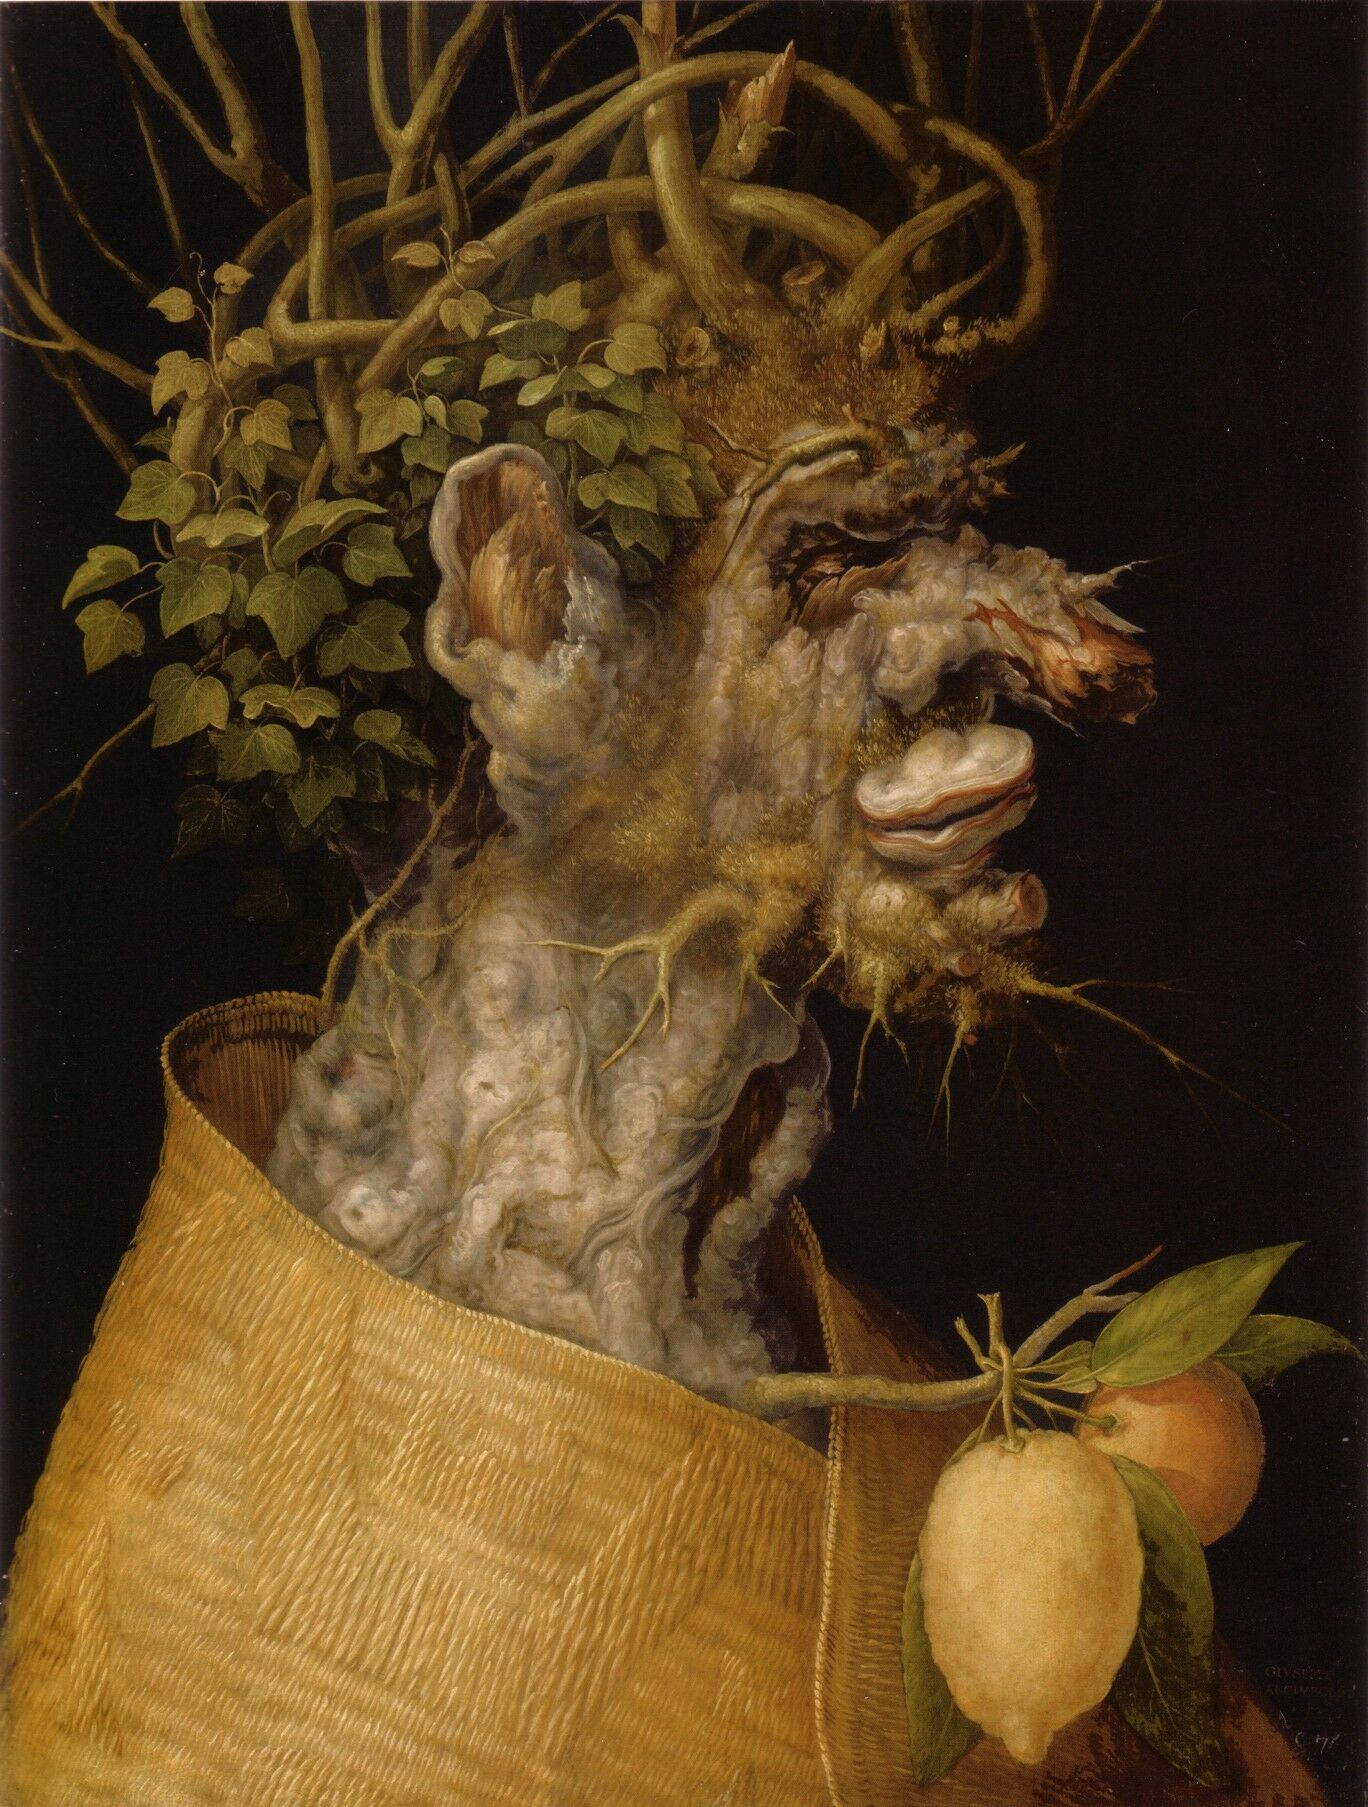 https://upload.wikimedia.org/wikipedia/commons/f/f8/Arcimboldo_Winter_1563.jpg